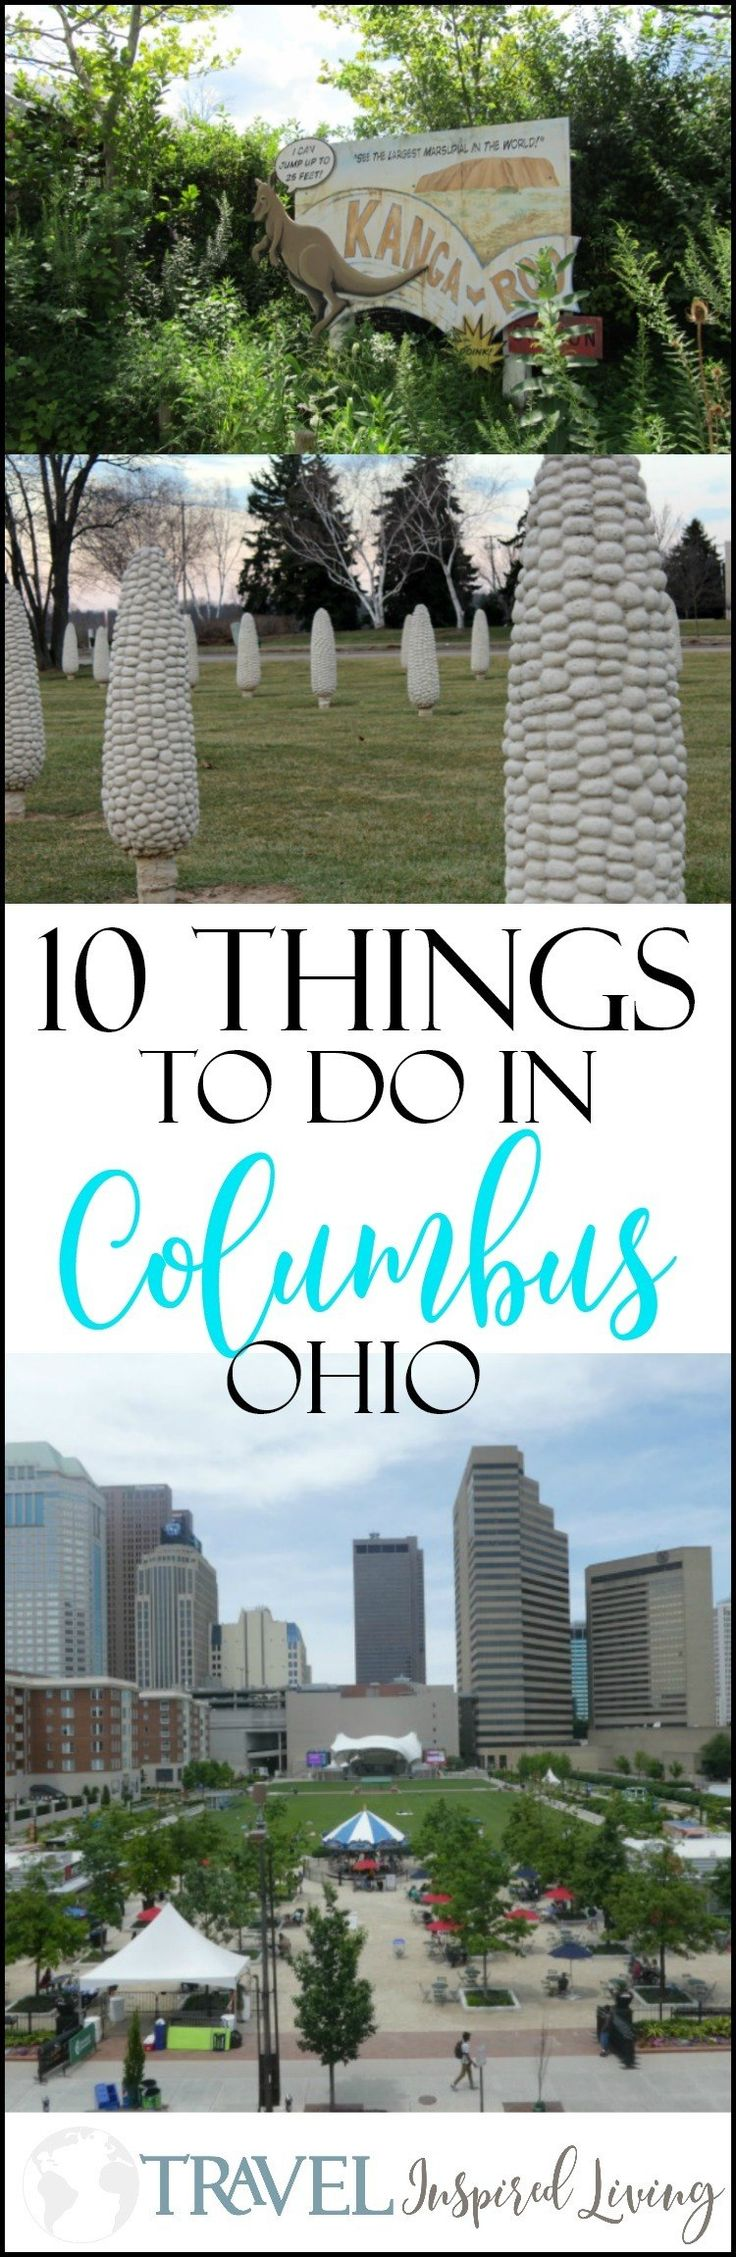 10 Things to do in Columbus Ohio with the family from the zoo, to new dinosaur exhibit at COSI to free days at the art museum.